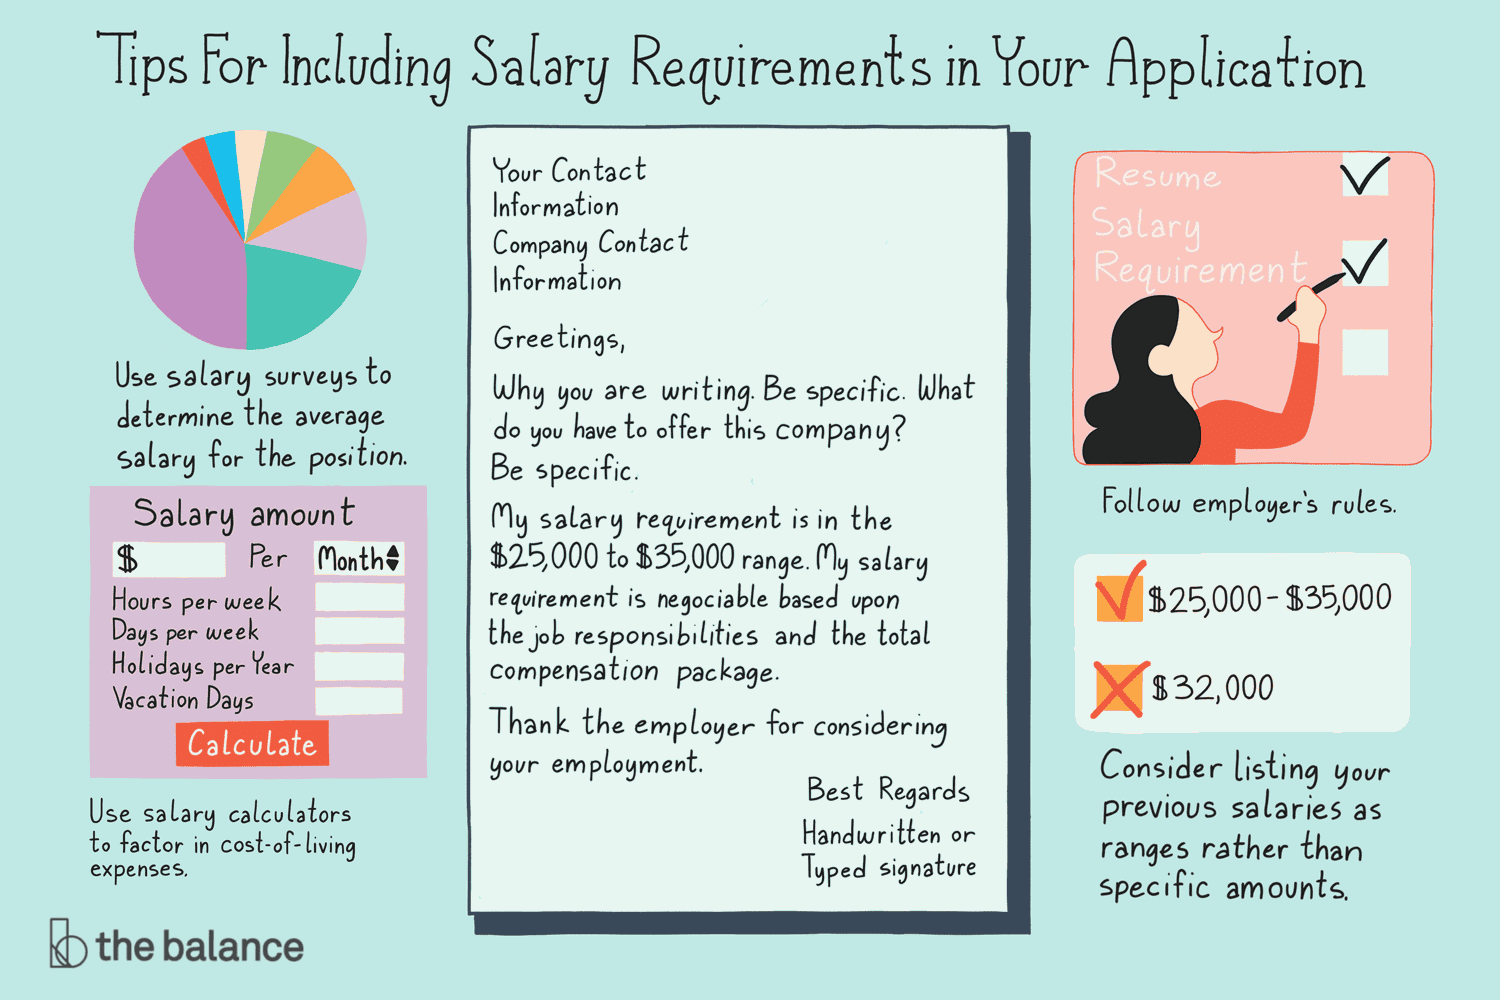 When And How To Disclose Your Salary Requirements